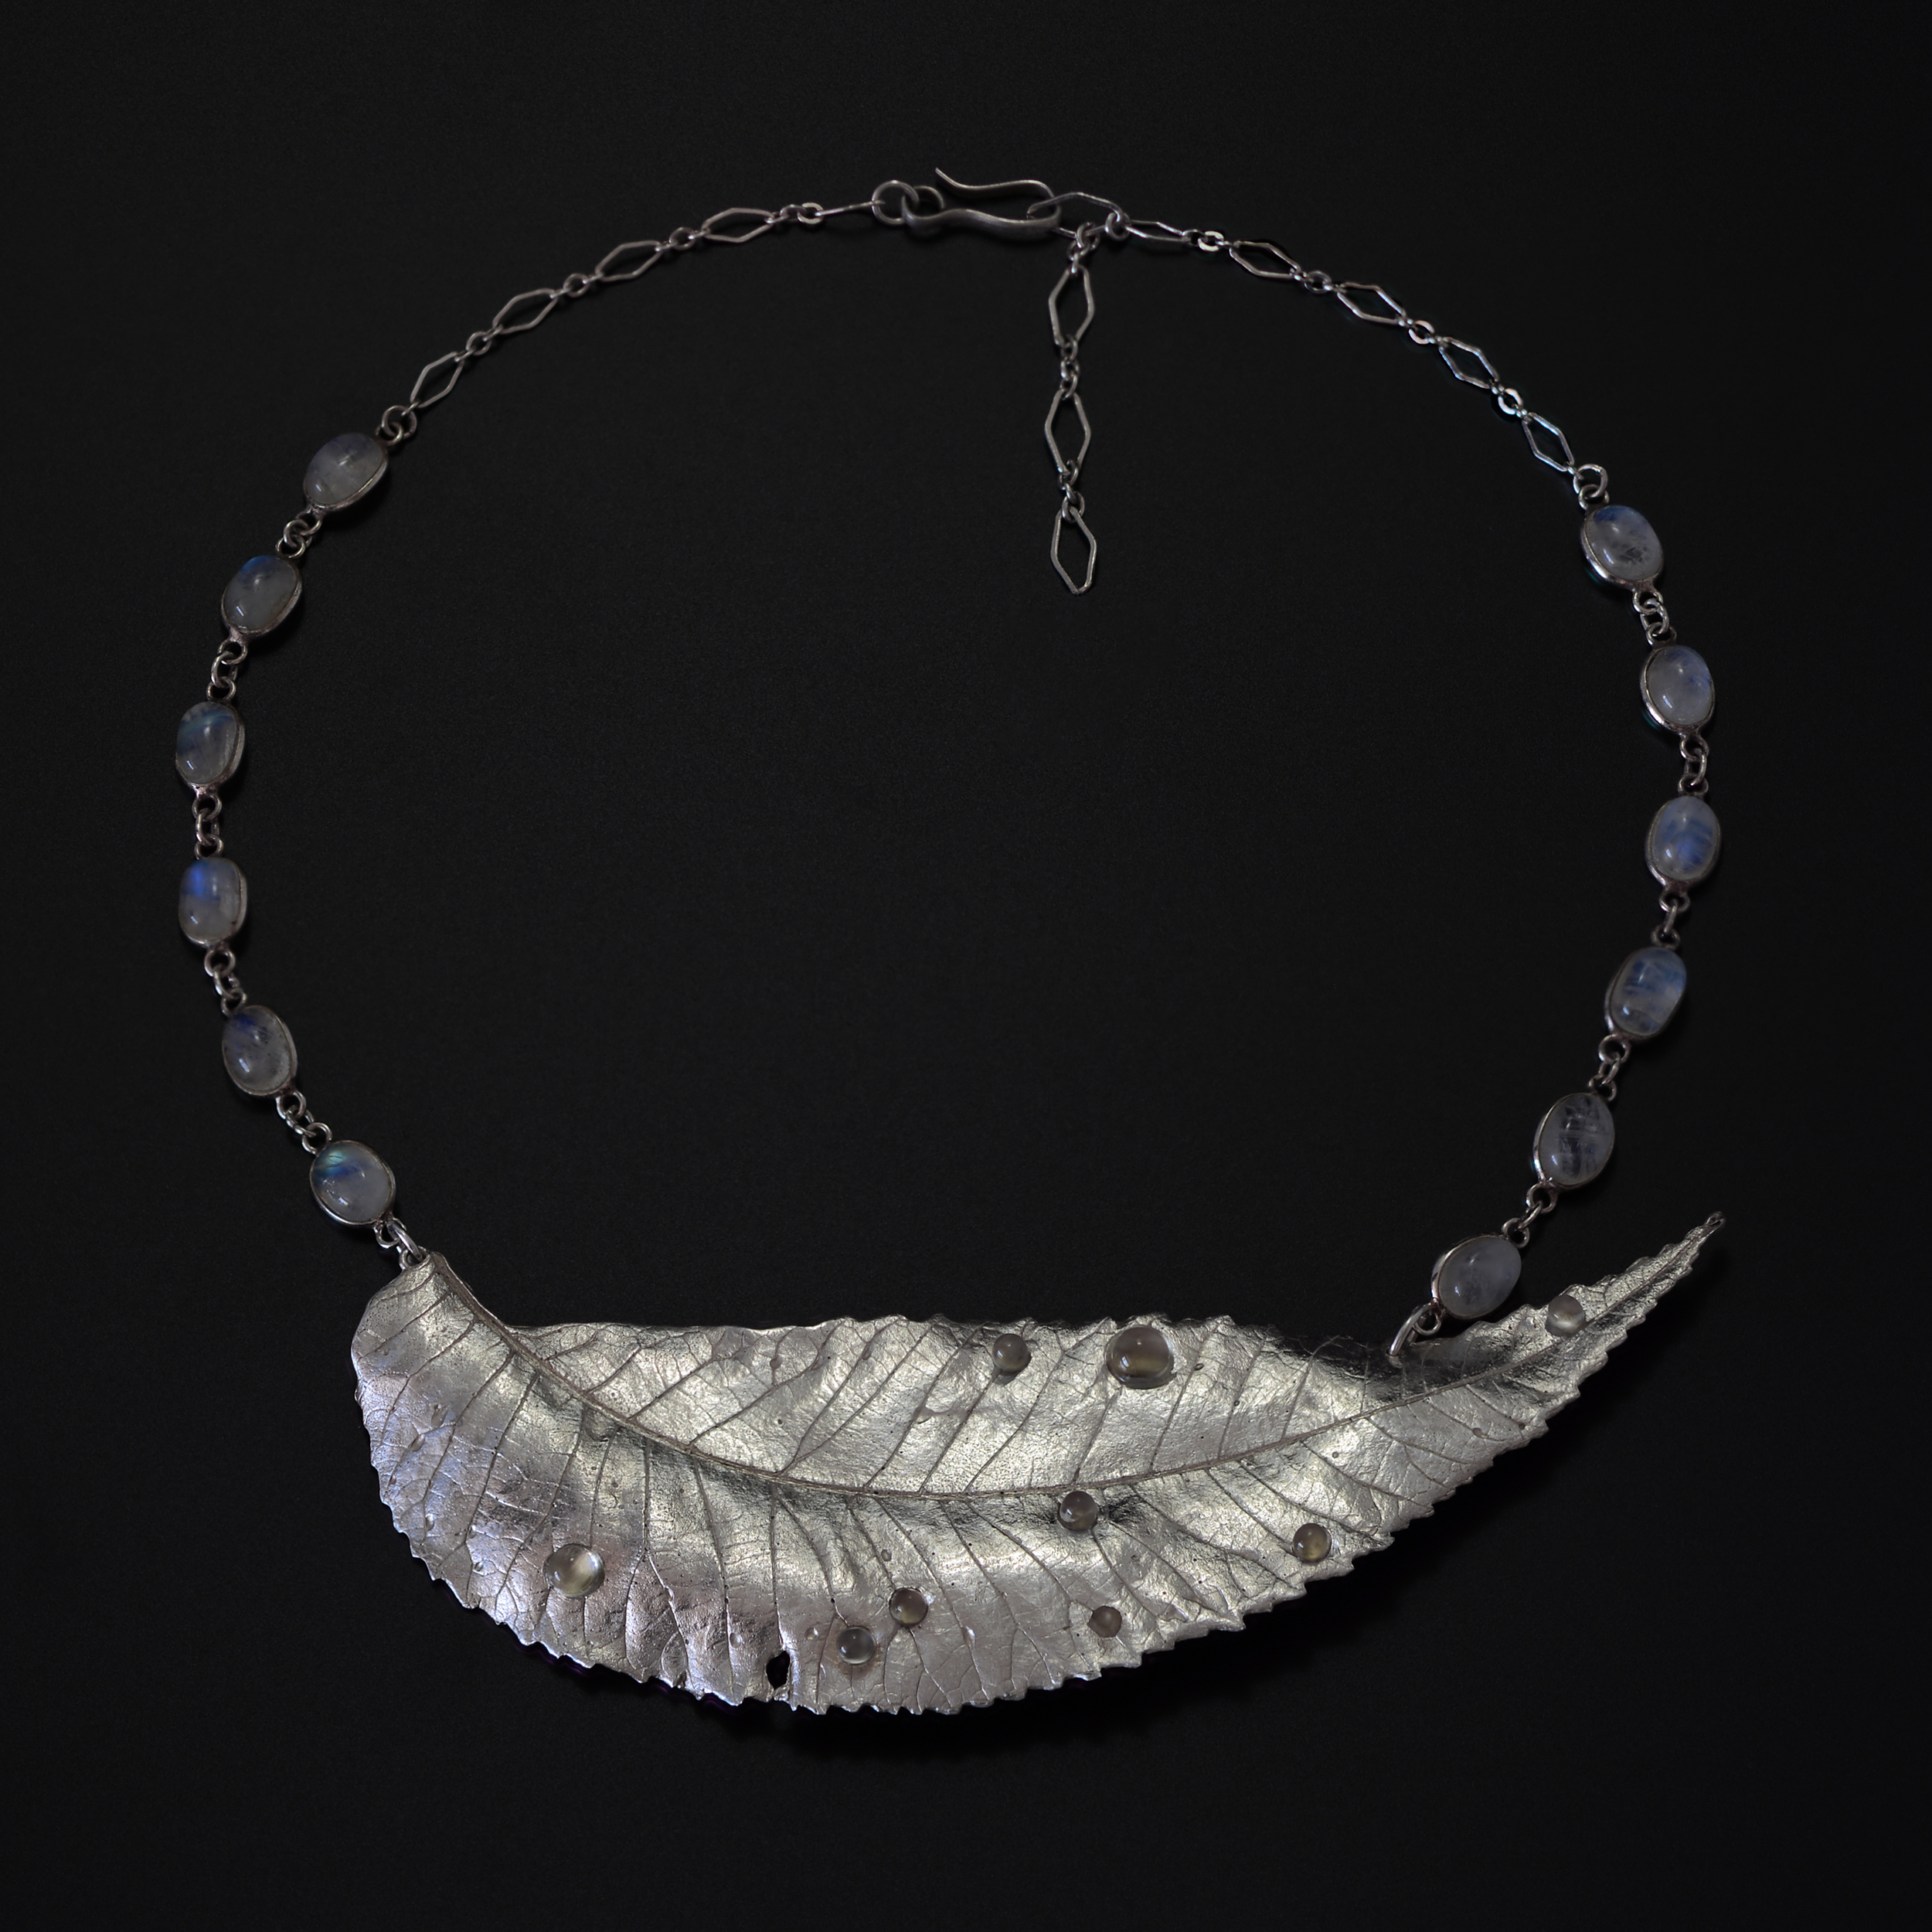 Pecan-Leaf-Necklace-Michelle-Hoting-Reflections-Jewels.jpg